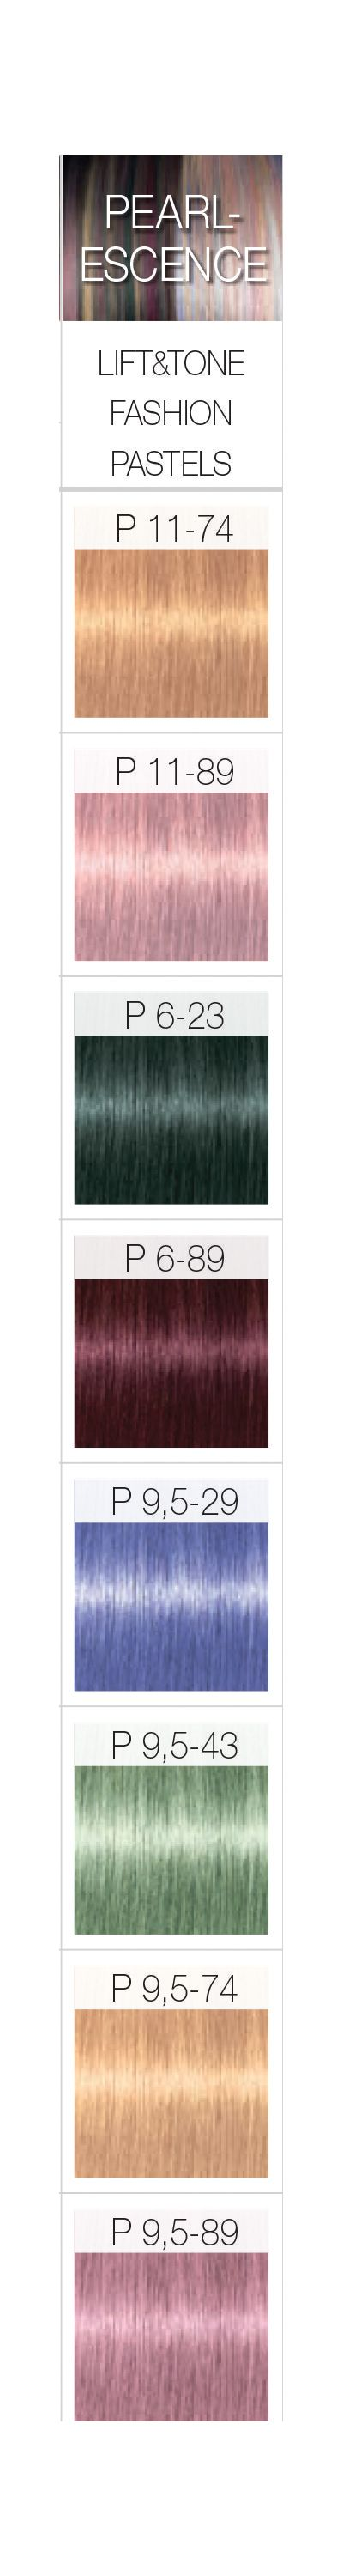 Schwarzkopf professional igora royal pearlescence permanent color schwarzkopf professional igora royal pearlescence permanent color creme shades i need to get them for nvjuhfo Gallery